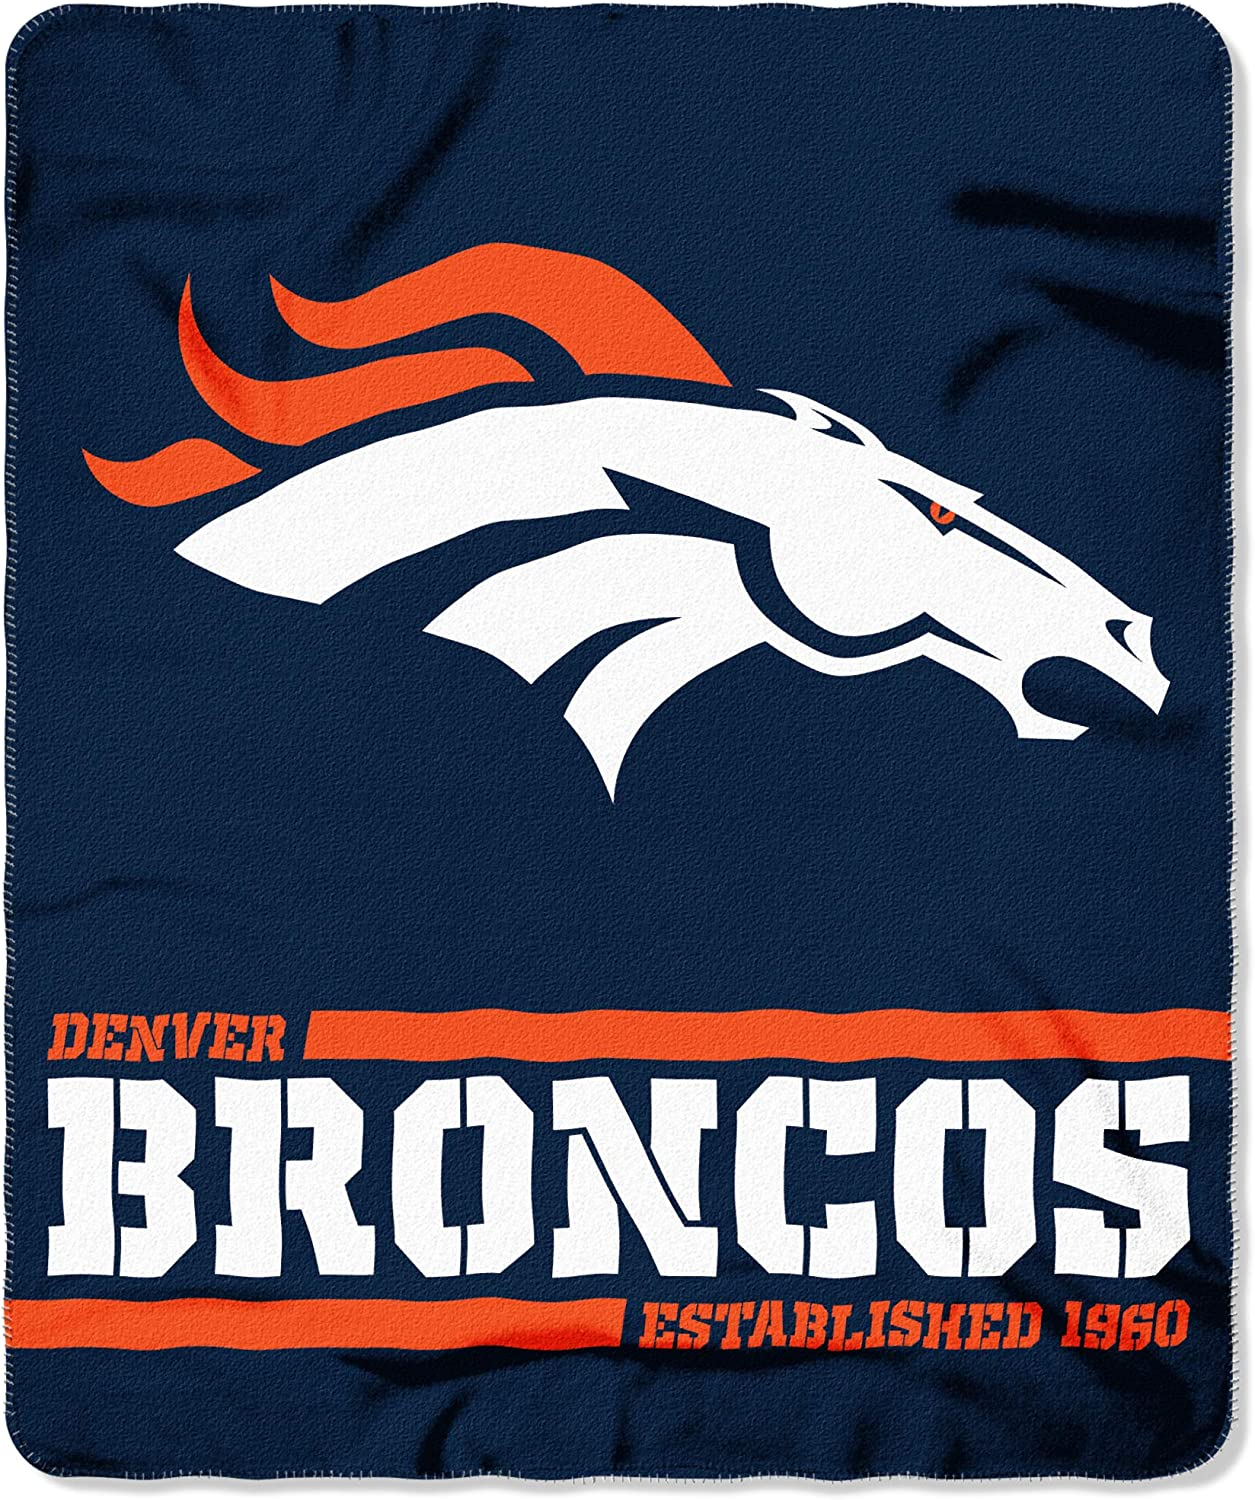 One Size Team Colors Northwest NFL Denver Broncos 50x60 Fleece Split Wide DesignBlanket